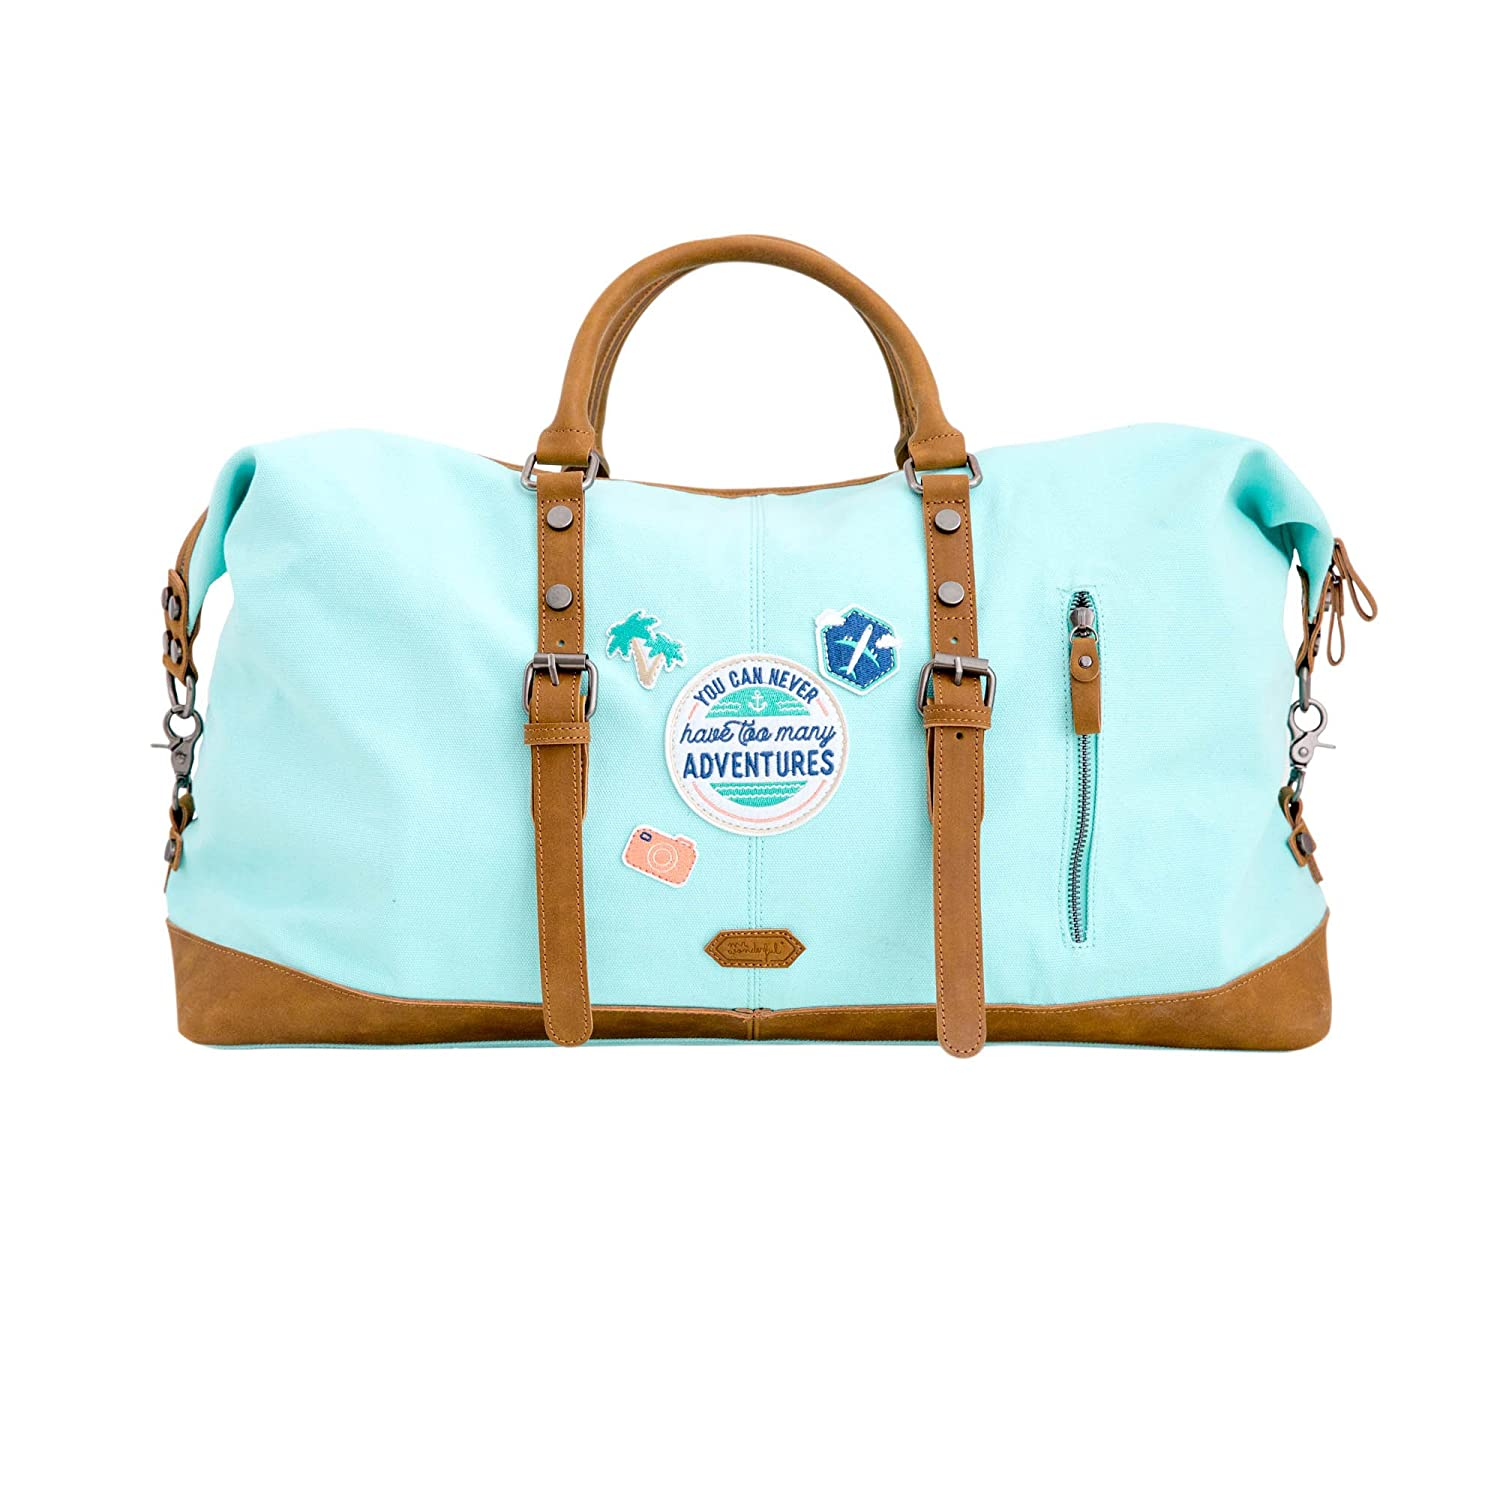 Mr. Wonderful Bolsa de Fin de Semana You Can Never Have Too Many Adventures, Algodón, Azul, 22x53x31 cm WOA08990UN